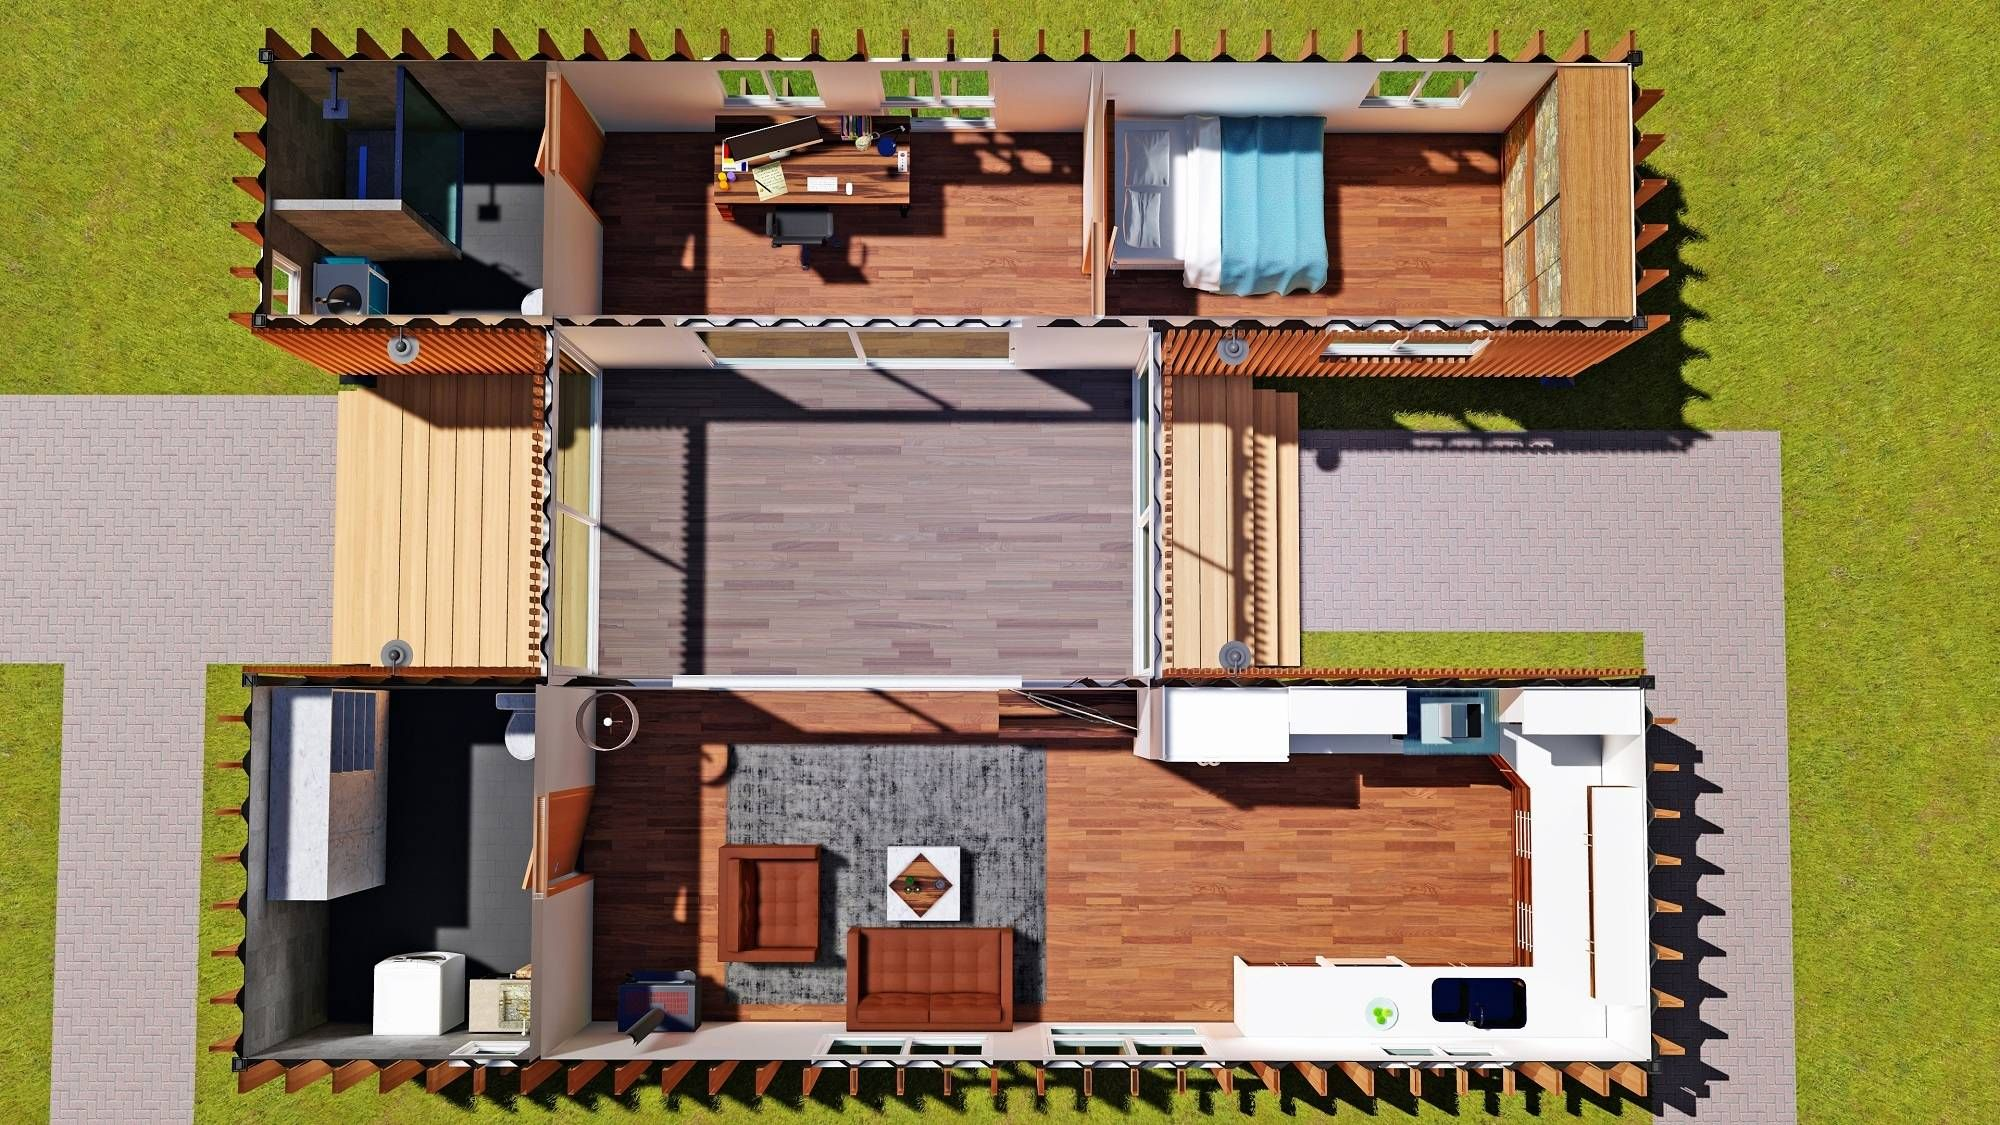 12 Ideas Container House Blueprint Shipping Containers For 48 Top Images Of Free Shipping Container House Plans Shipping Container House Plans Container House